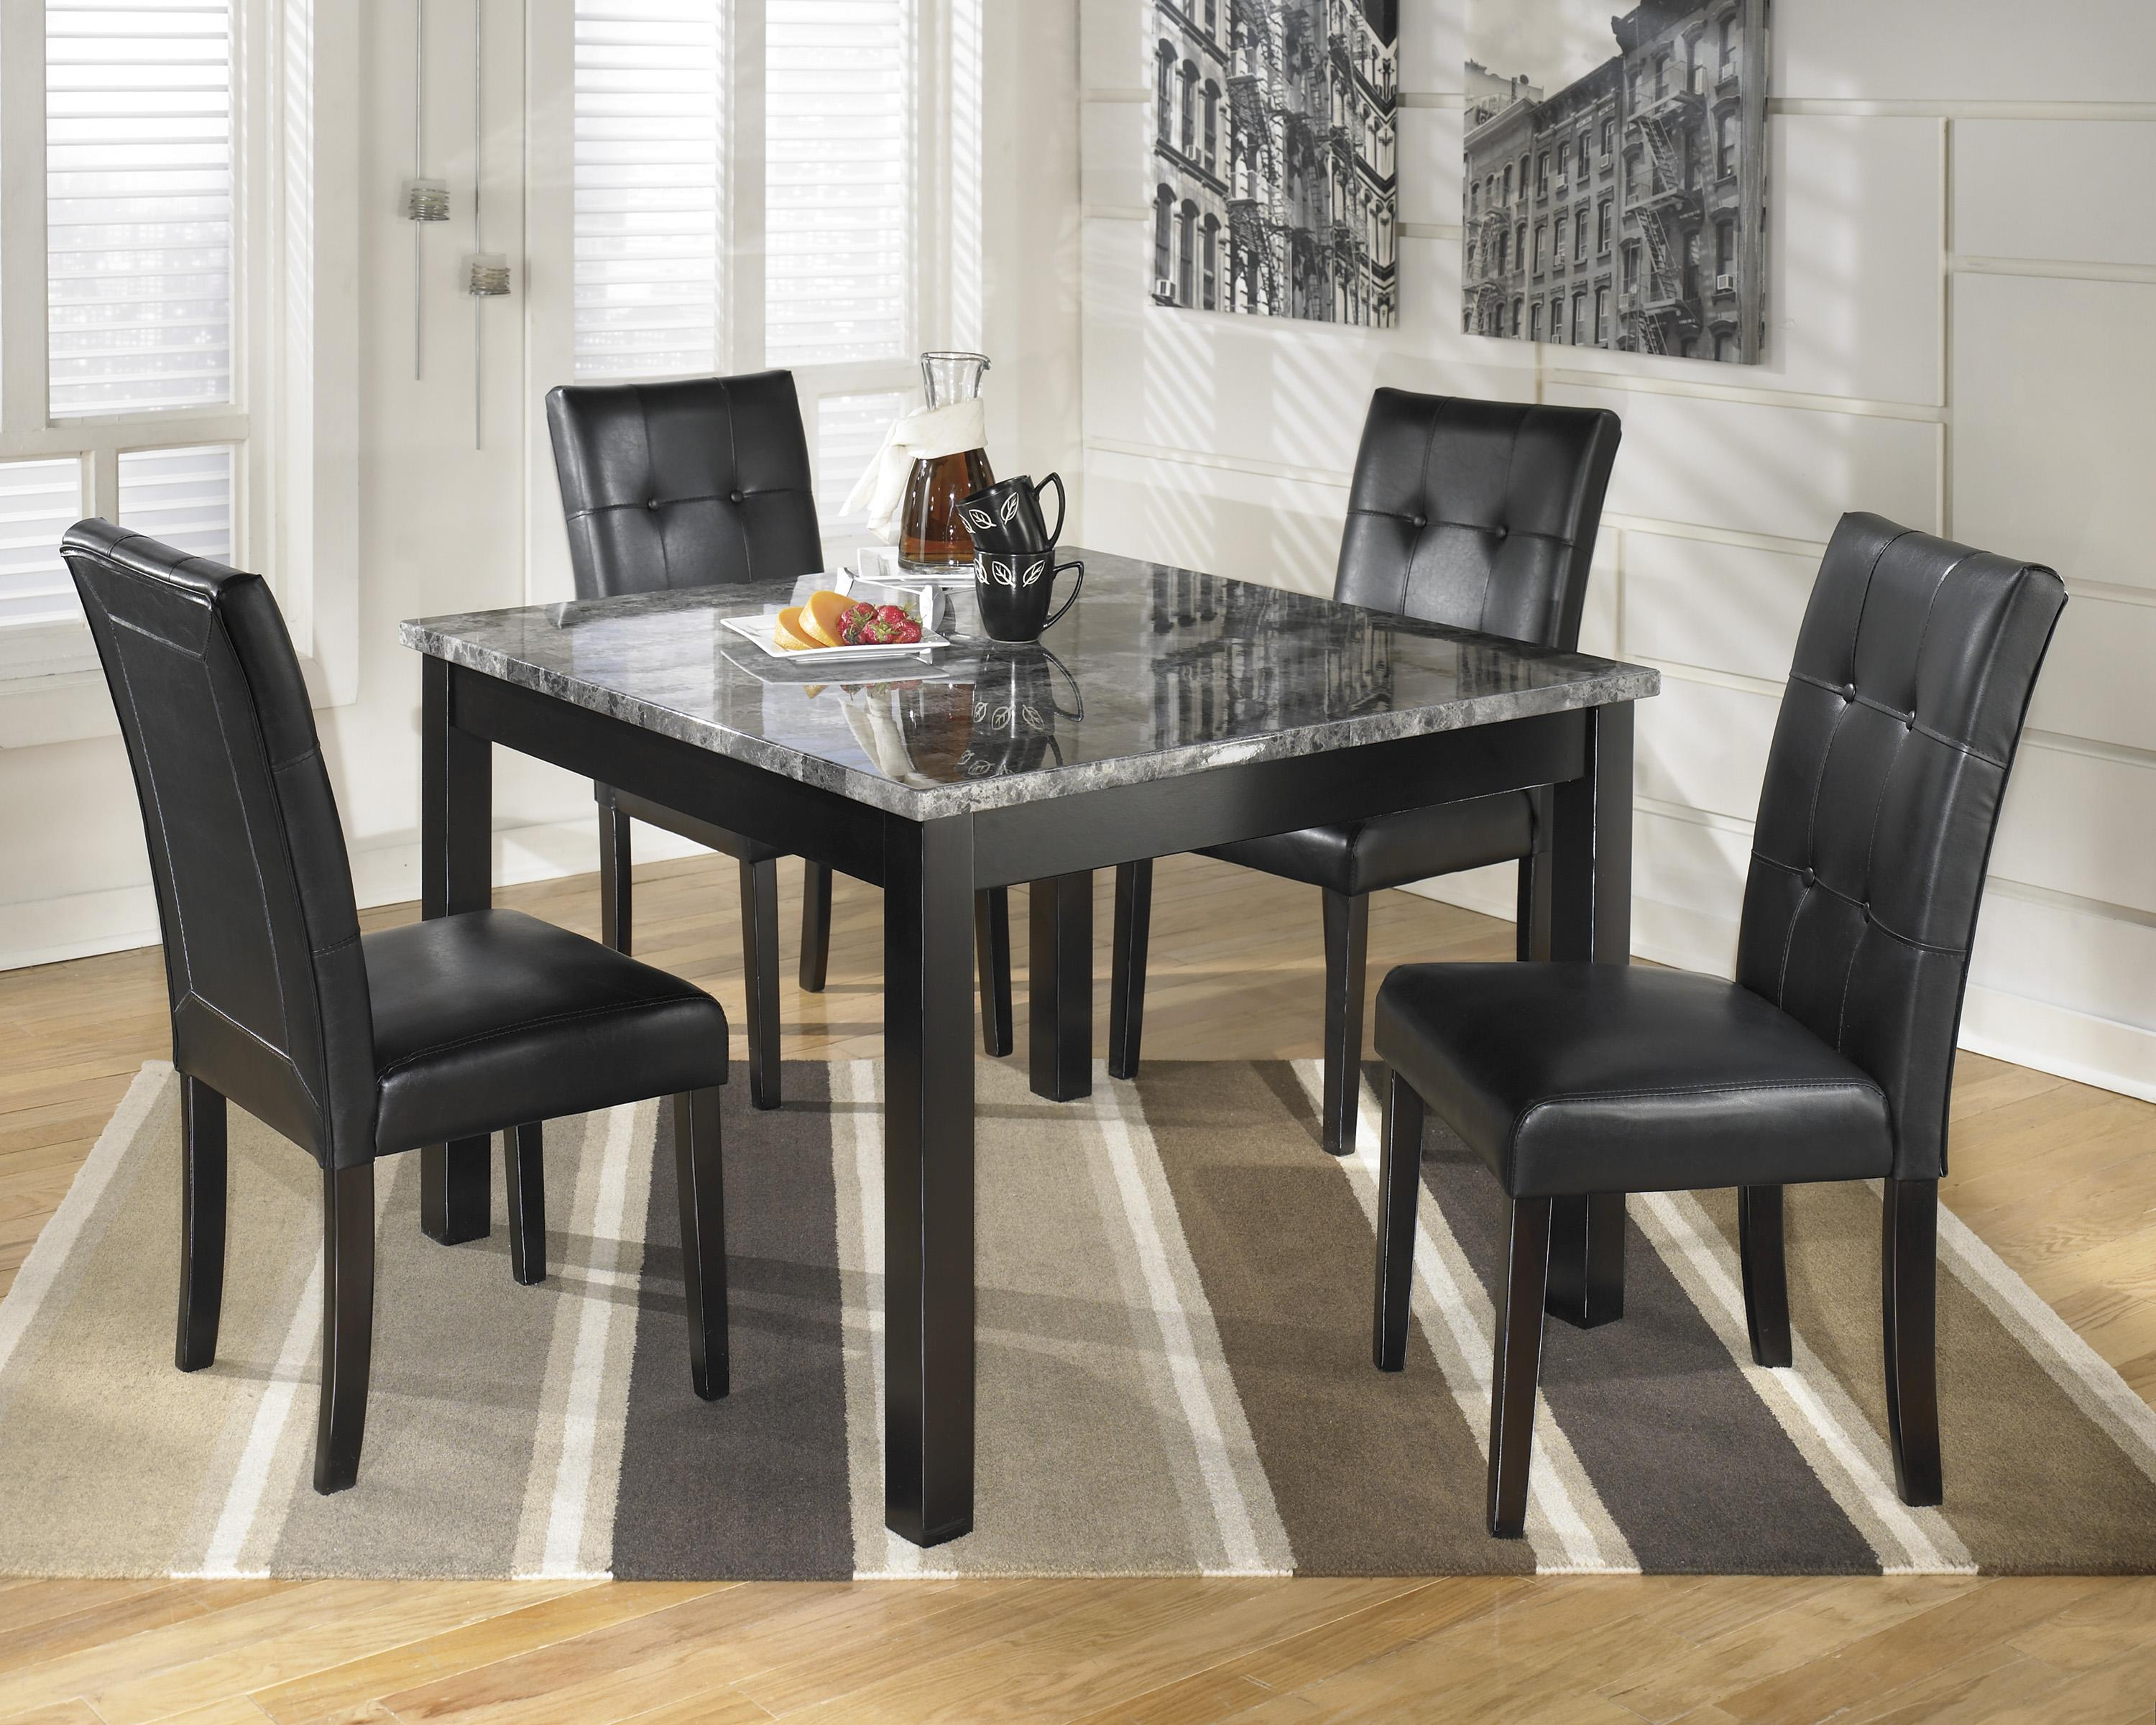 Ashley dining room furniture - Signature Design By Ashley Furniture Maysville Square Dining Room Table Set Item Number D154